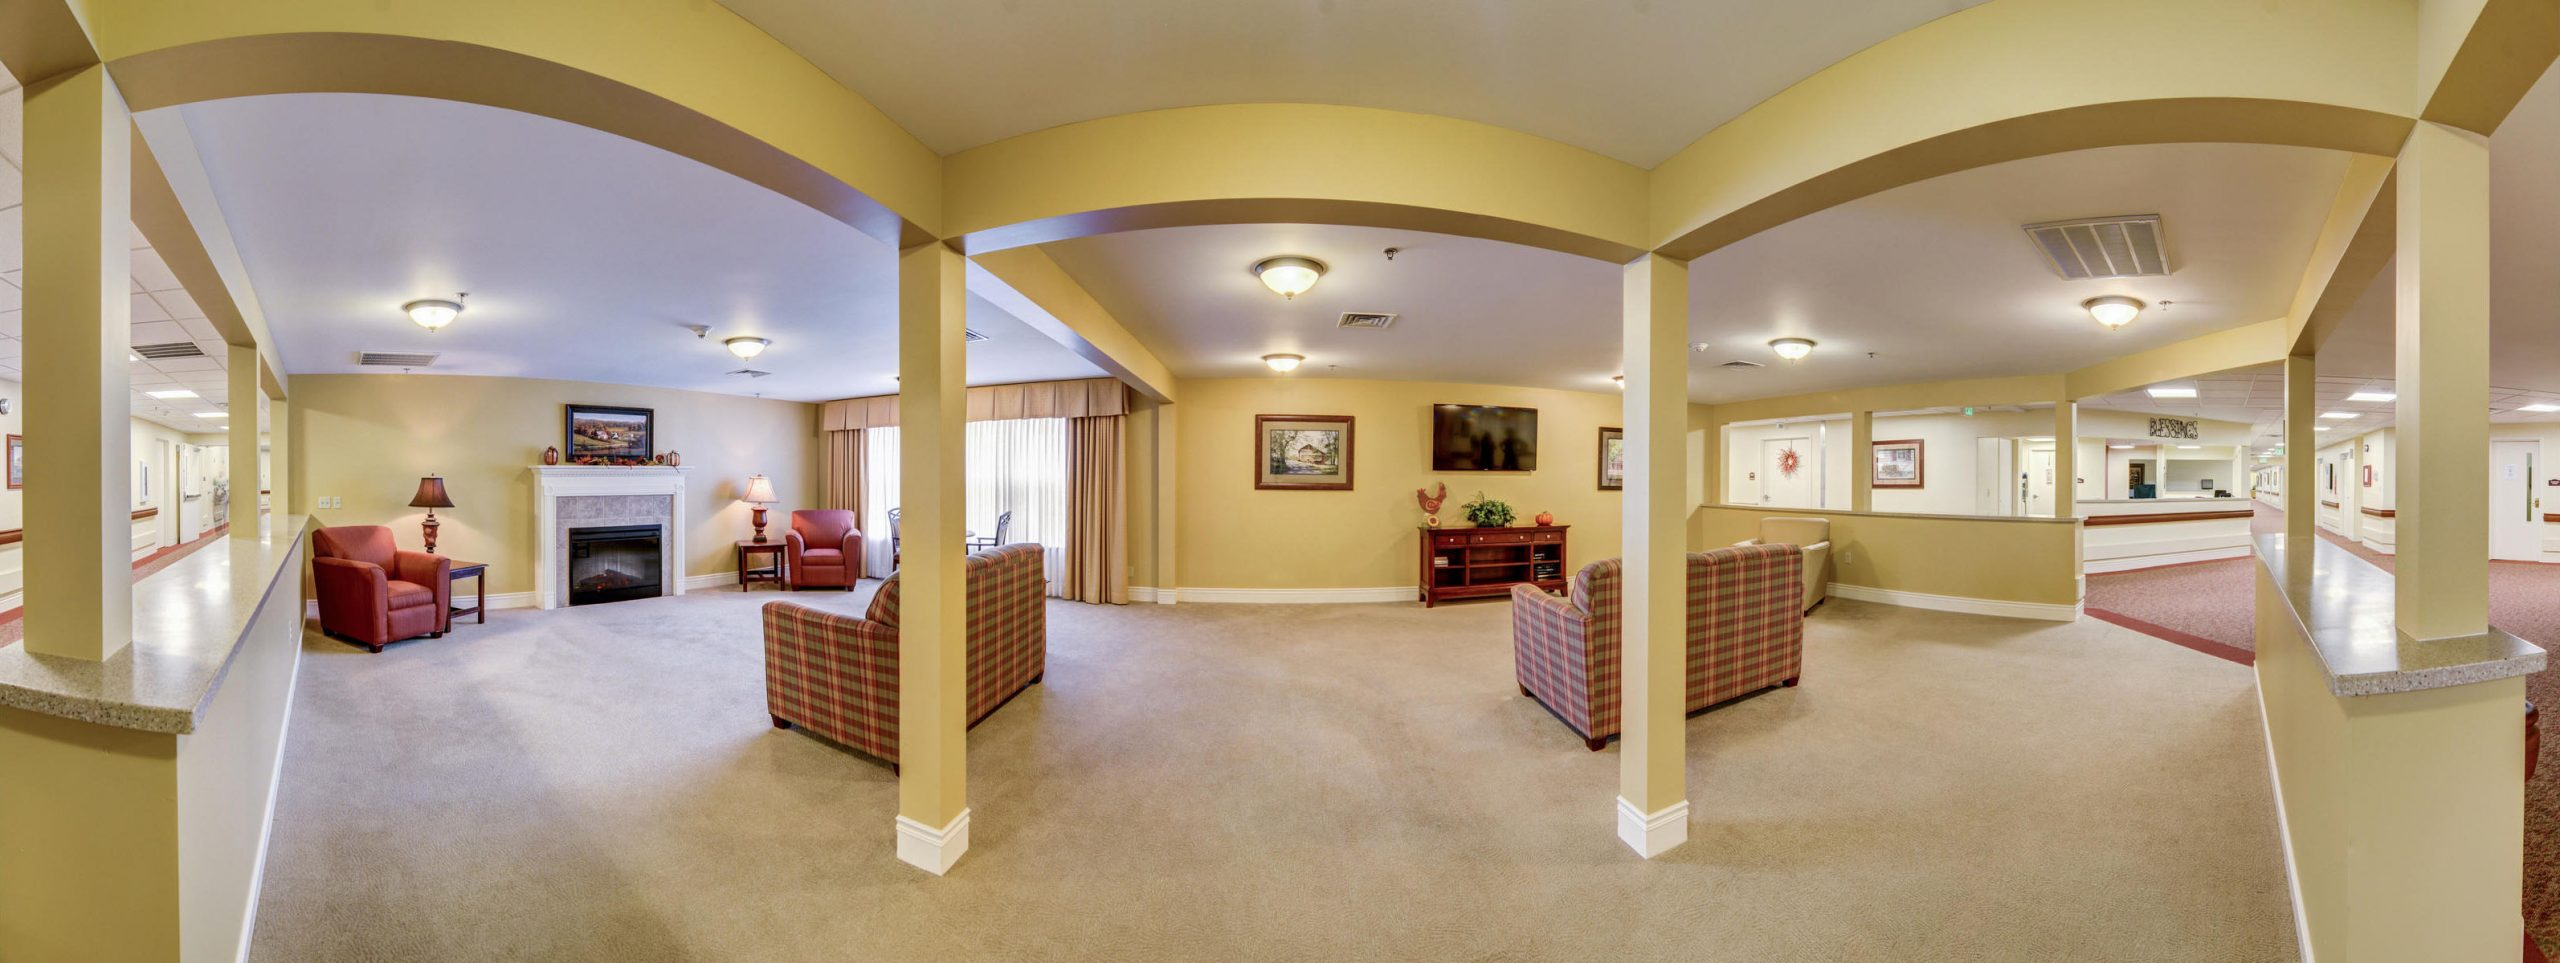 Panoramic view of Stonerise Lindside sitting room with fireplace, TV and sofas